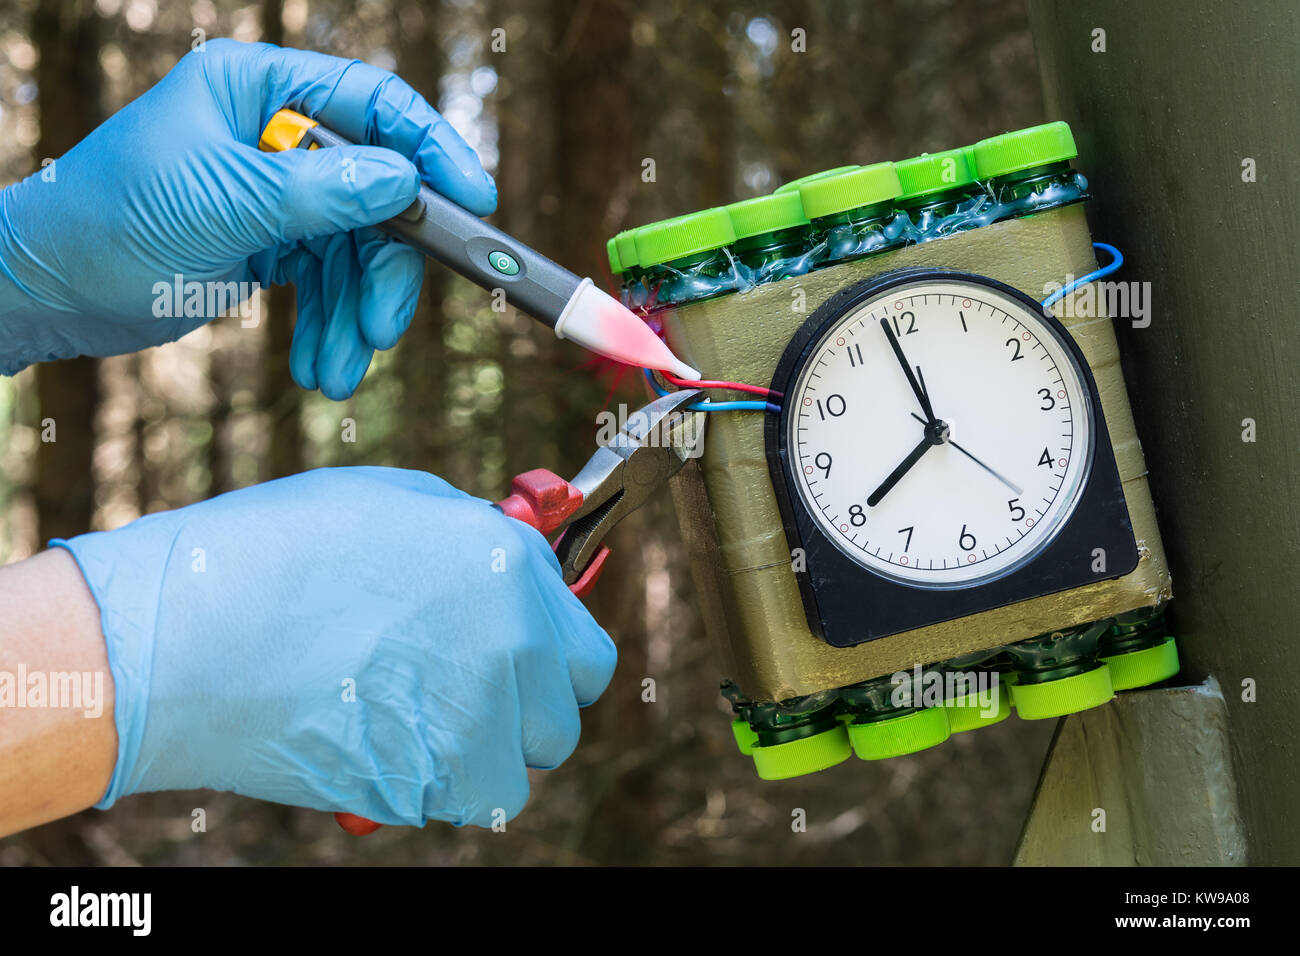 Deactivation found explosive. Imitation of timed bomb. The expert carefully disables the dangerous timebomb. - Stock Image